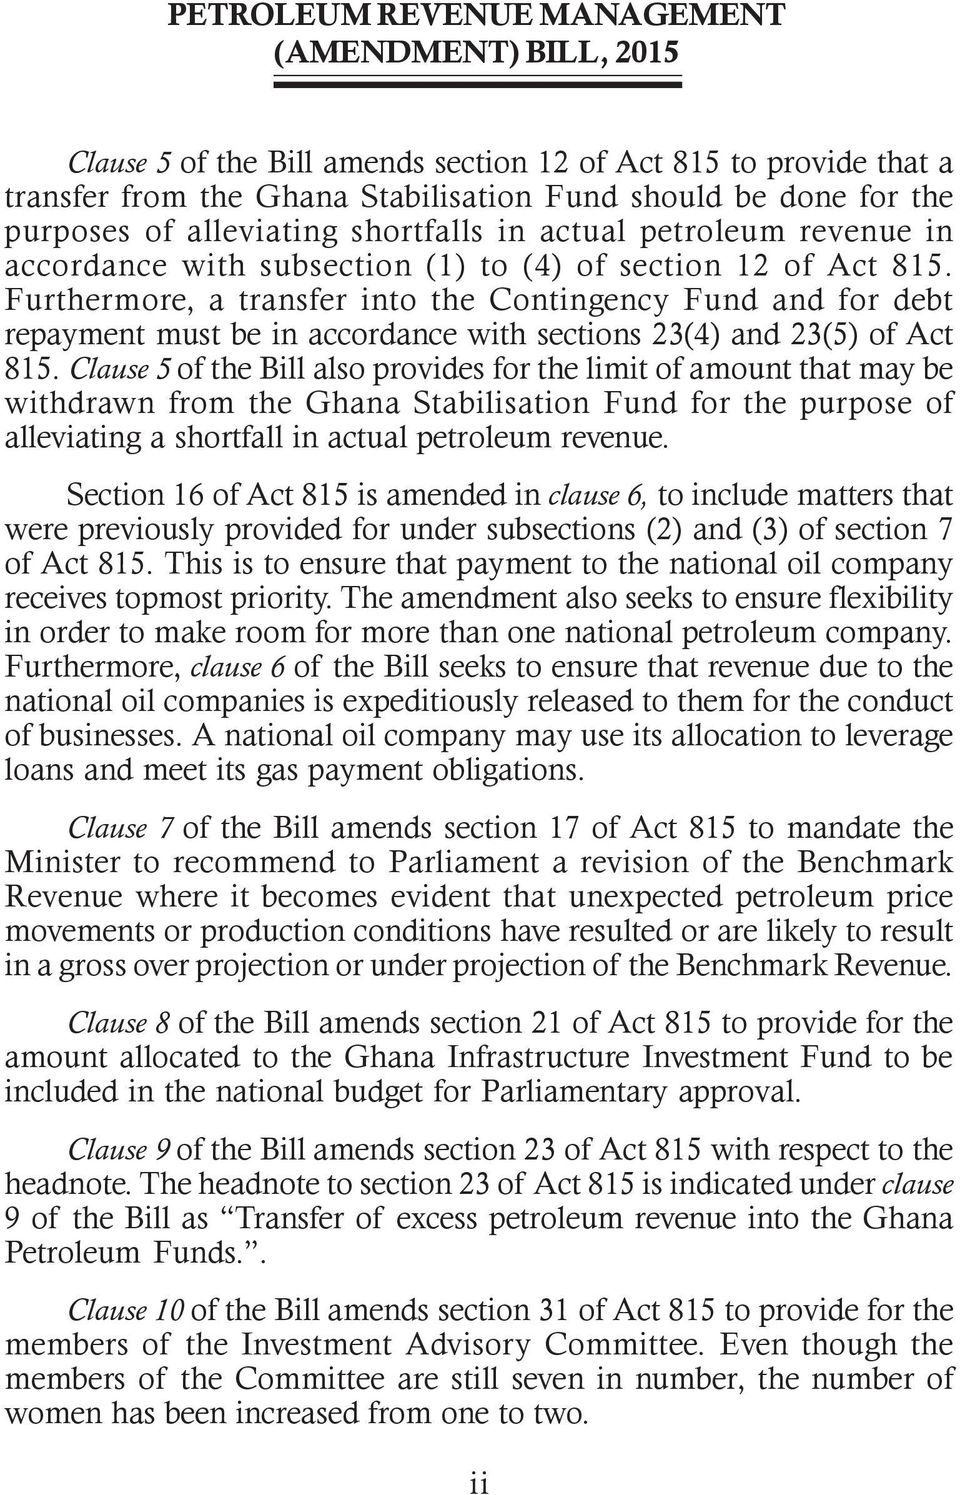 Clause 5 of the Bill also provides for the limit of amount that may be withdrawn from the Ghana Stabilisation Fund for the purpose of alleviating a shortfall in actual petroleum revenue.